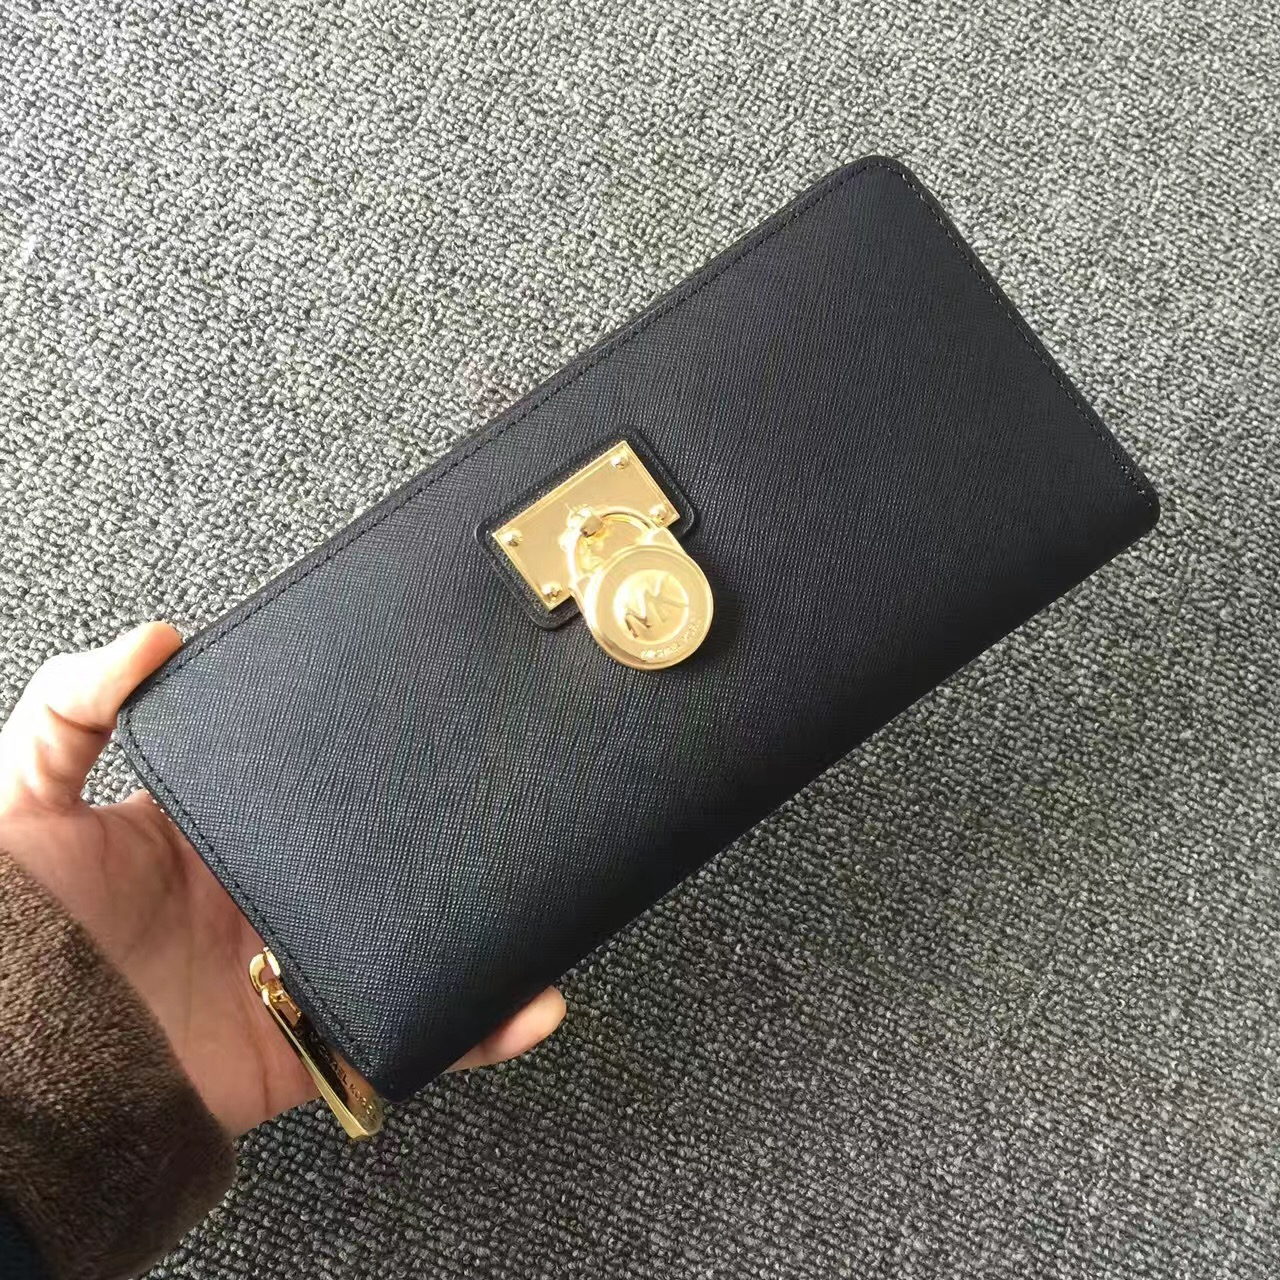 2017 New Michael Kors Lock Women Small Wallets Black